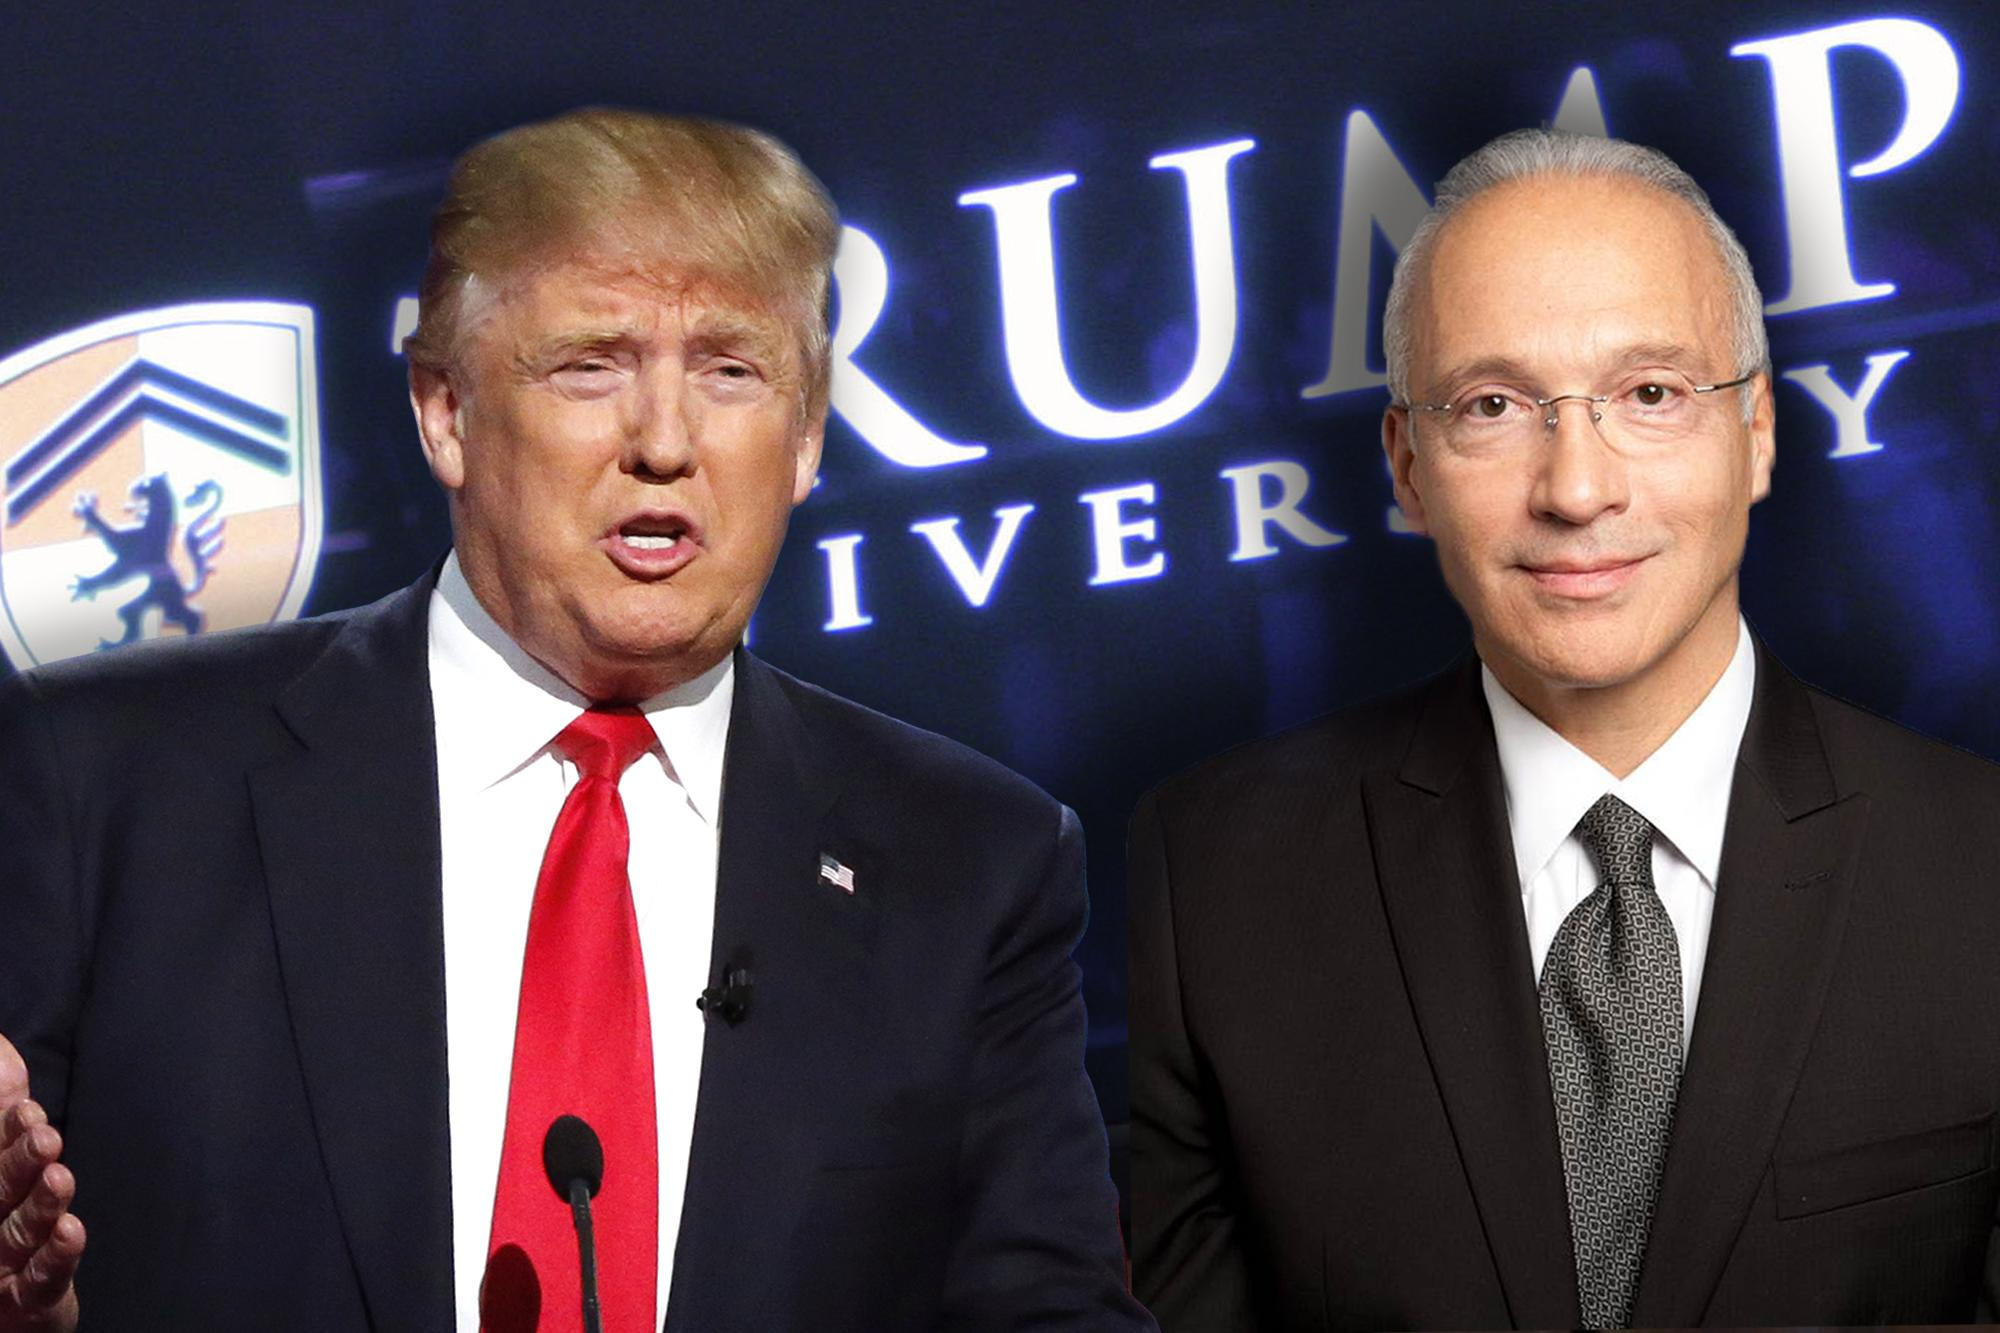 Donald Trump and Judge Gonzalo Curiel